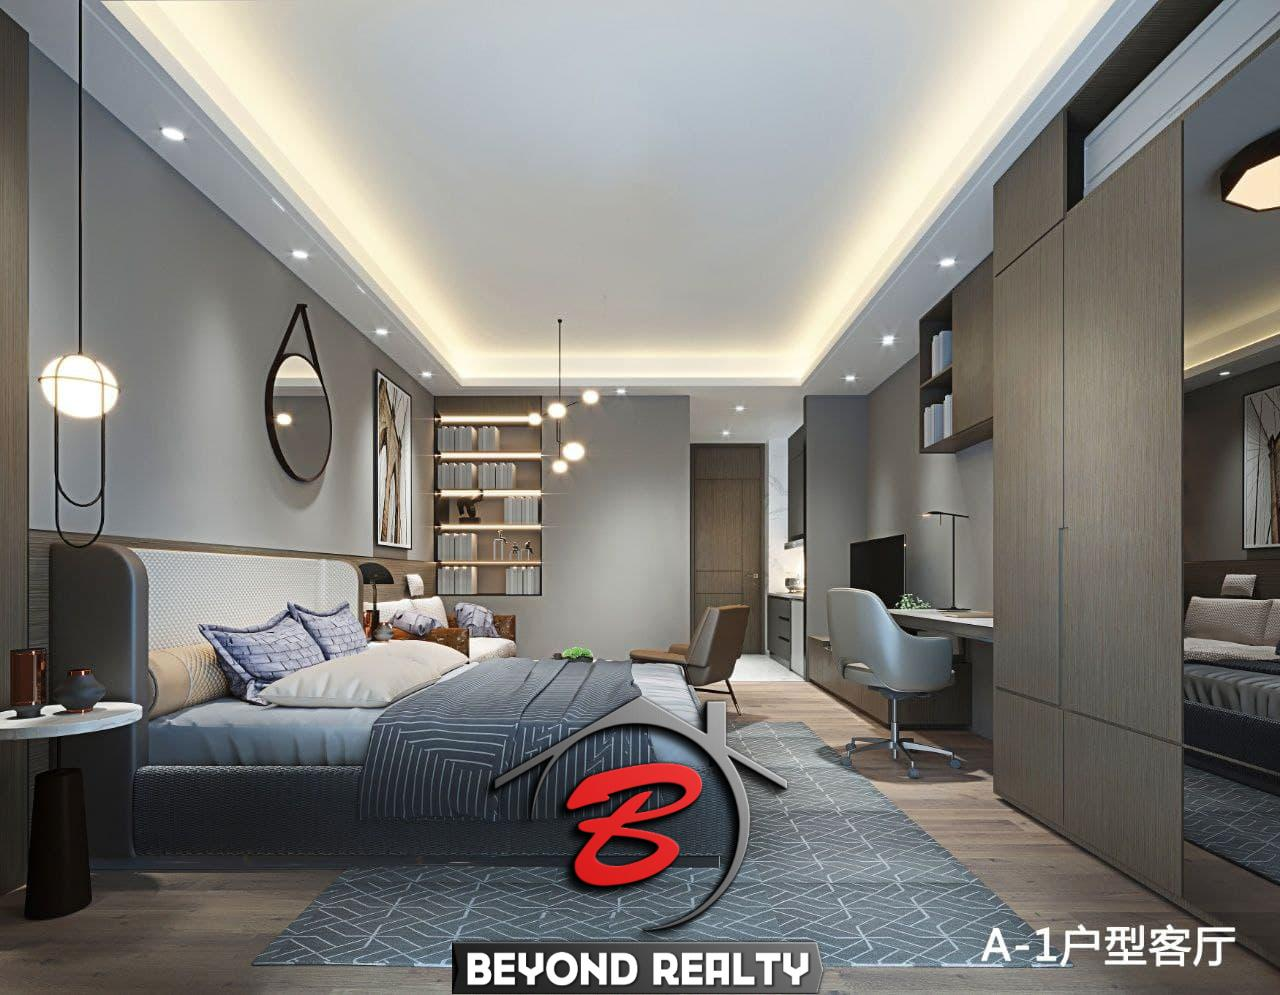 the bedroom of the 1br condo for sale at Treasure Bay Sihanoukville